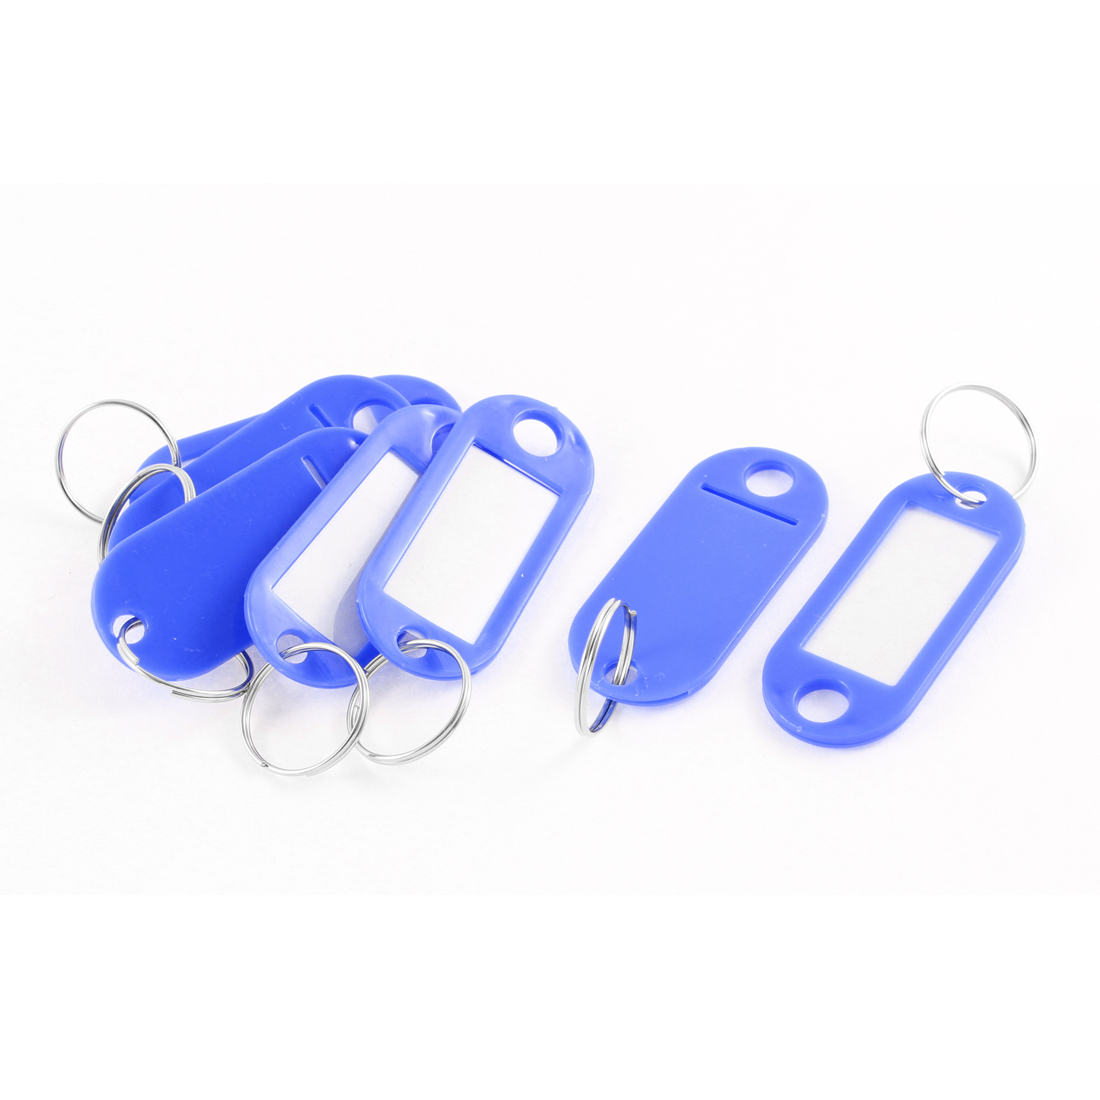 7pcs Blue Plastic Luggage Fobs ID Label Name Tag Badge Clip Holder Keyring